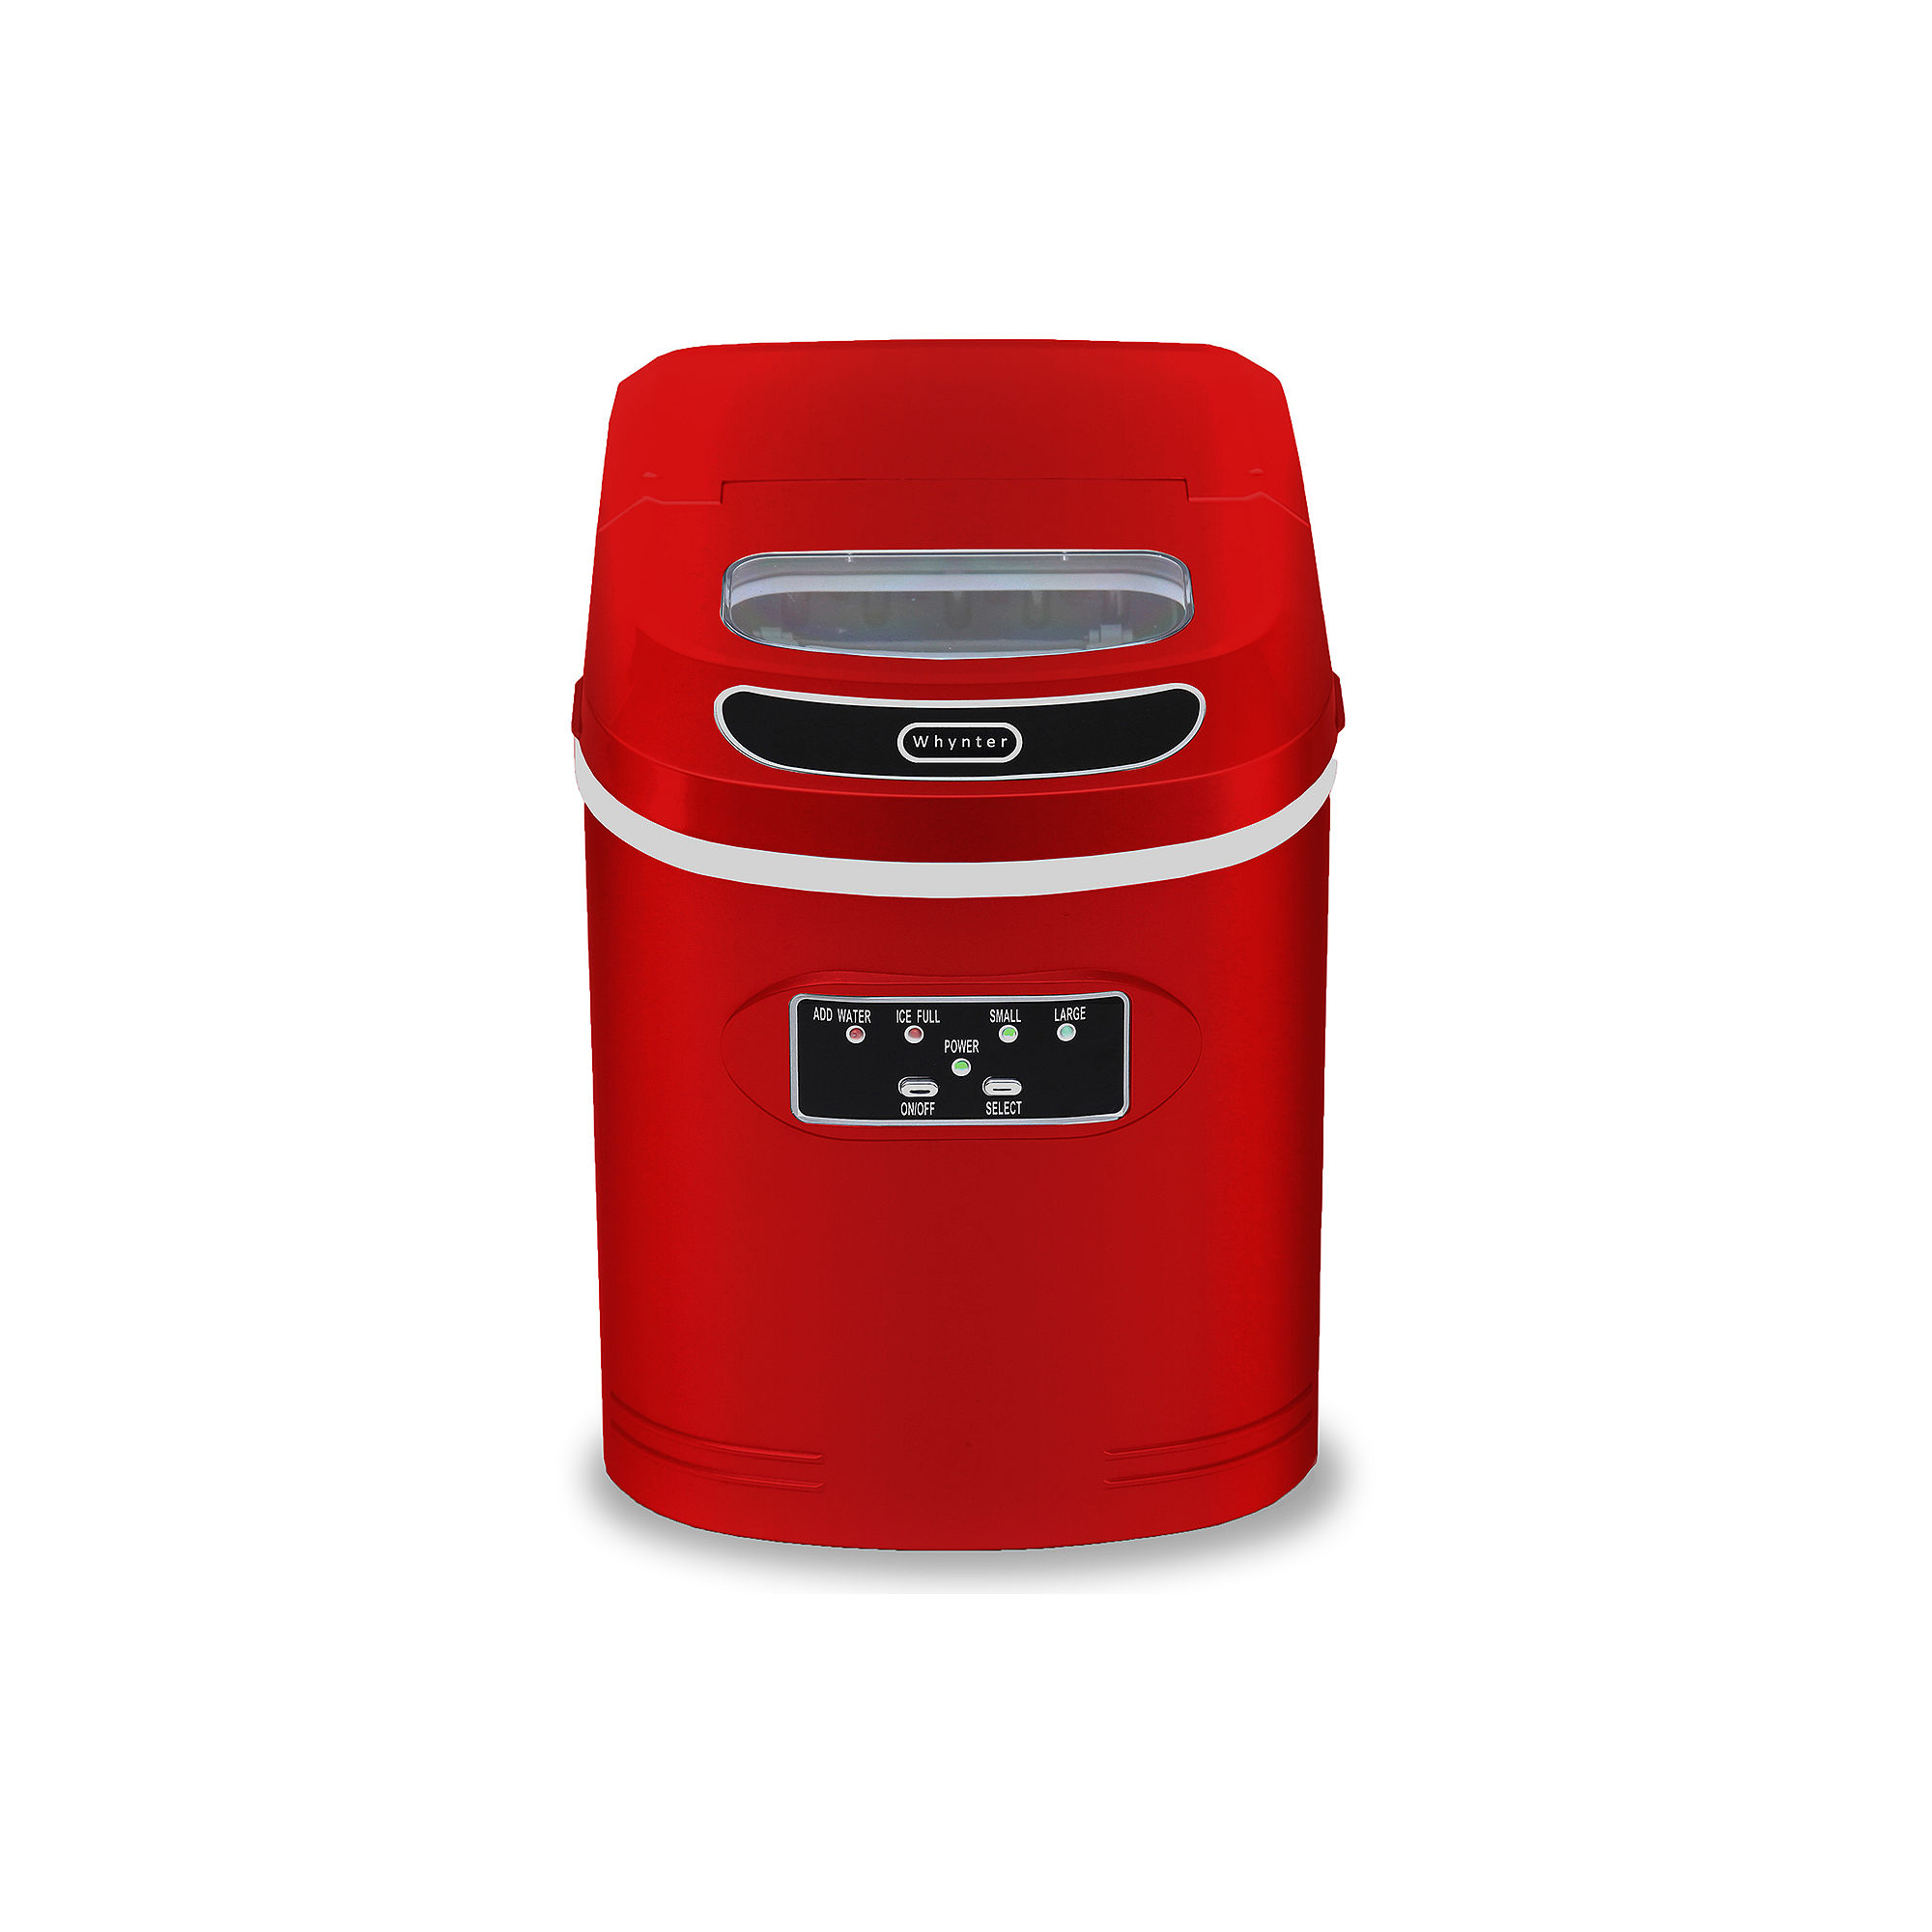 Whynter Compact Portable Ice Maker 27 lb capacity - Red